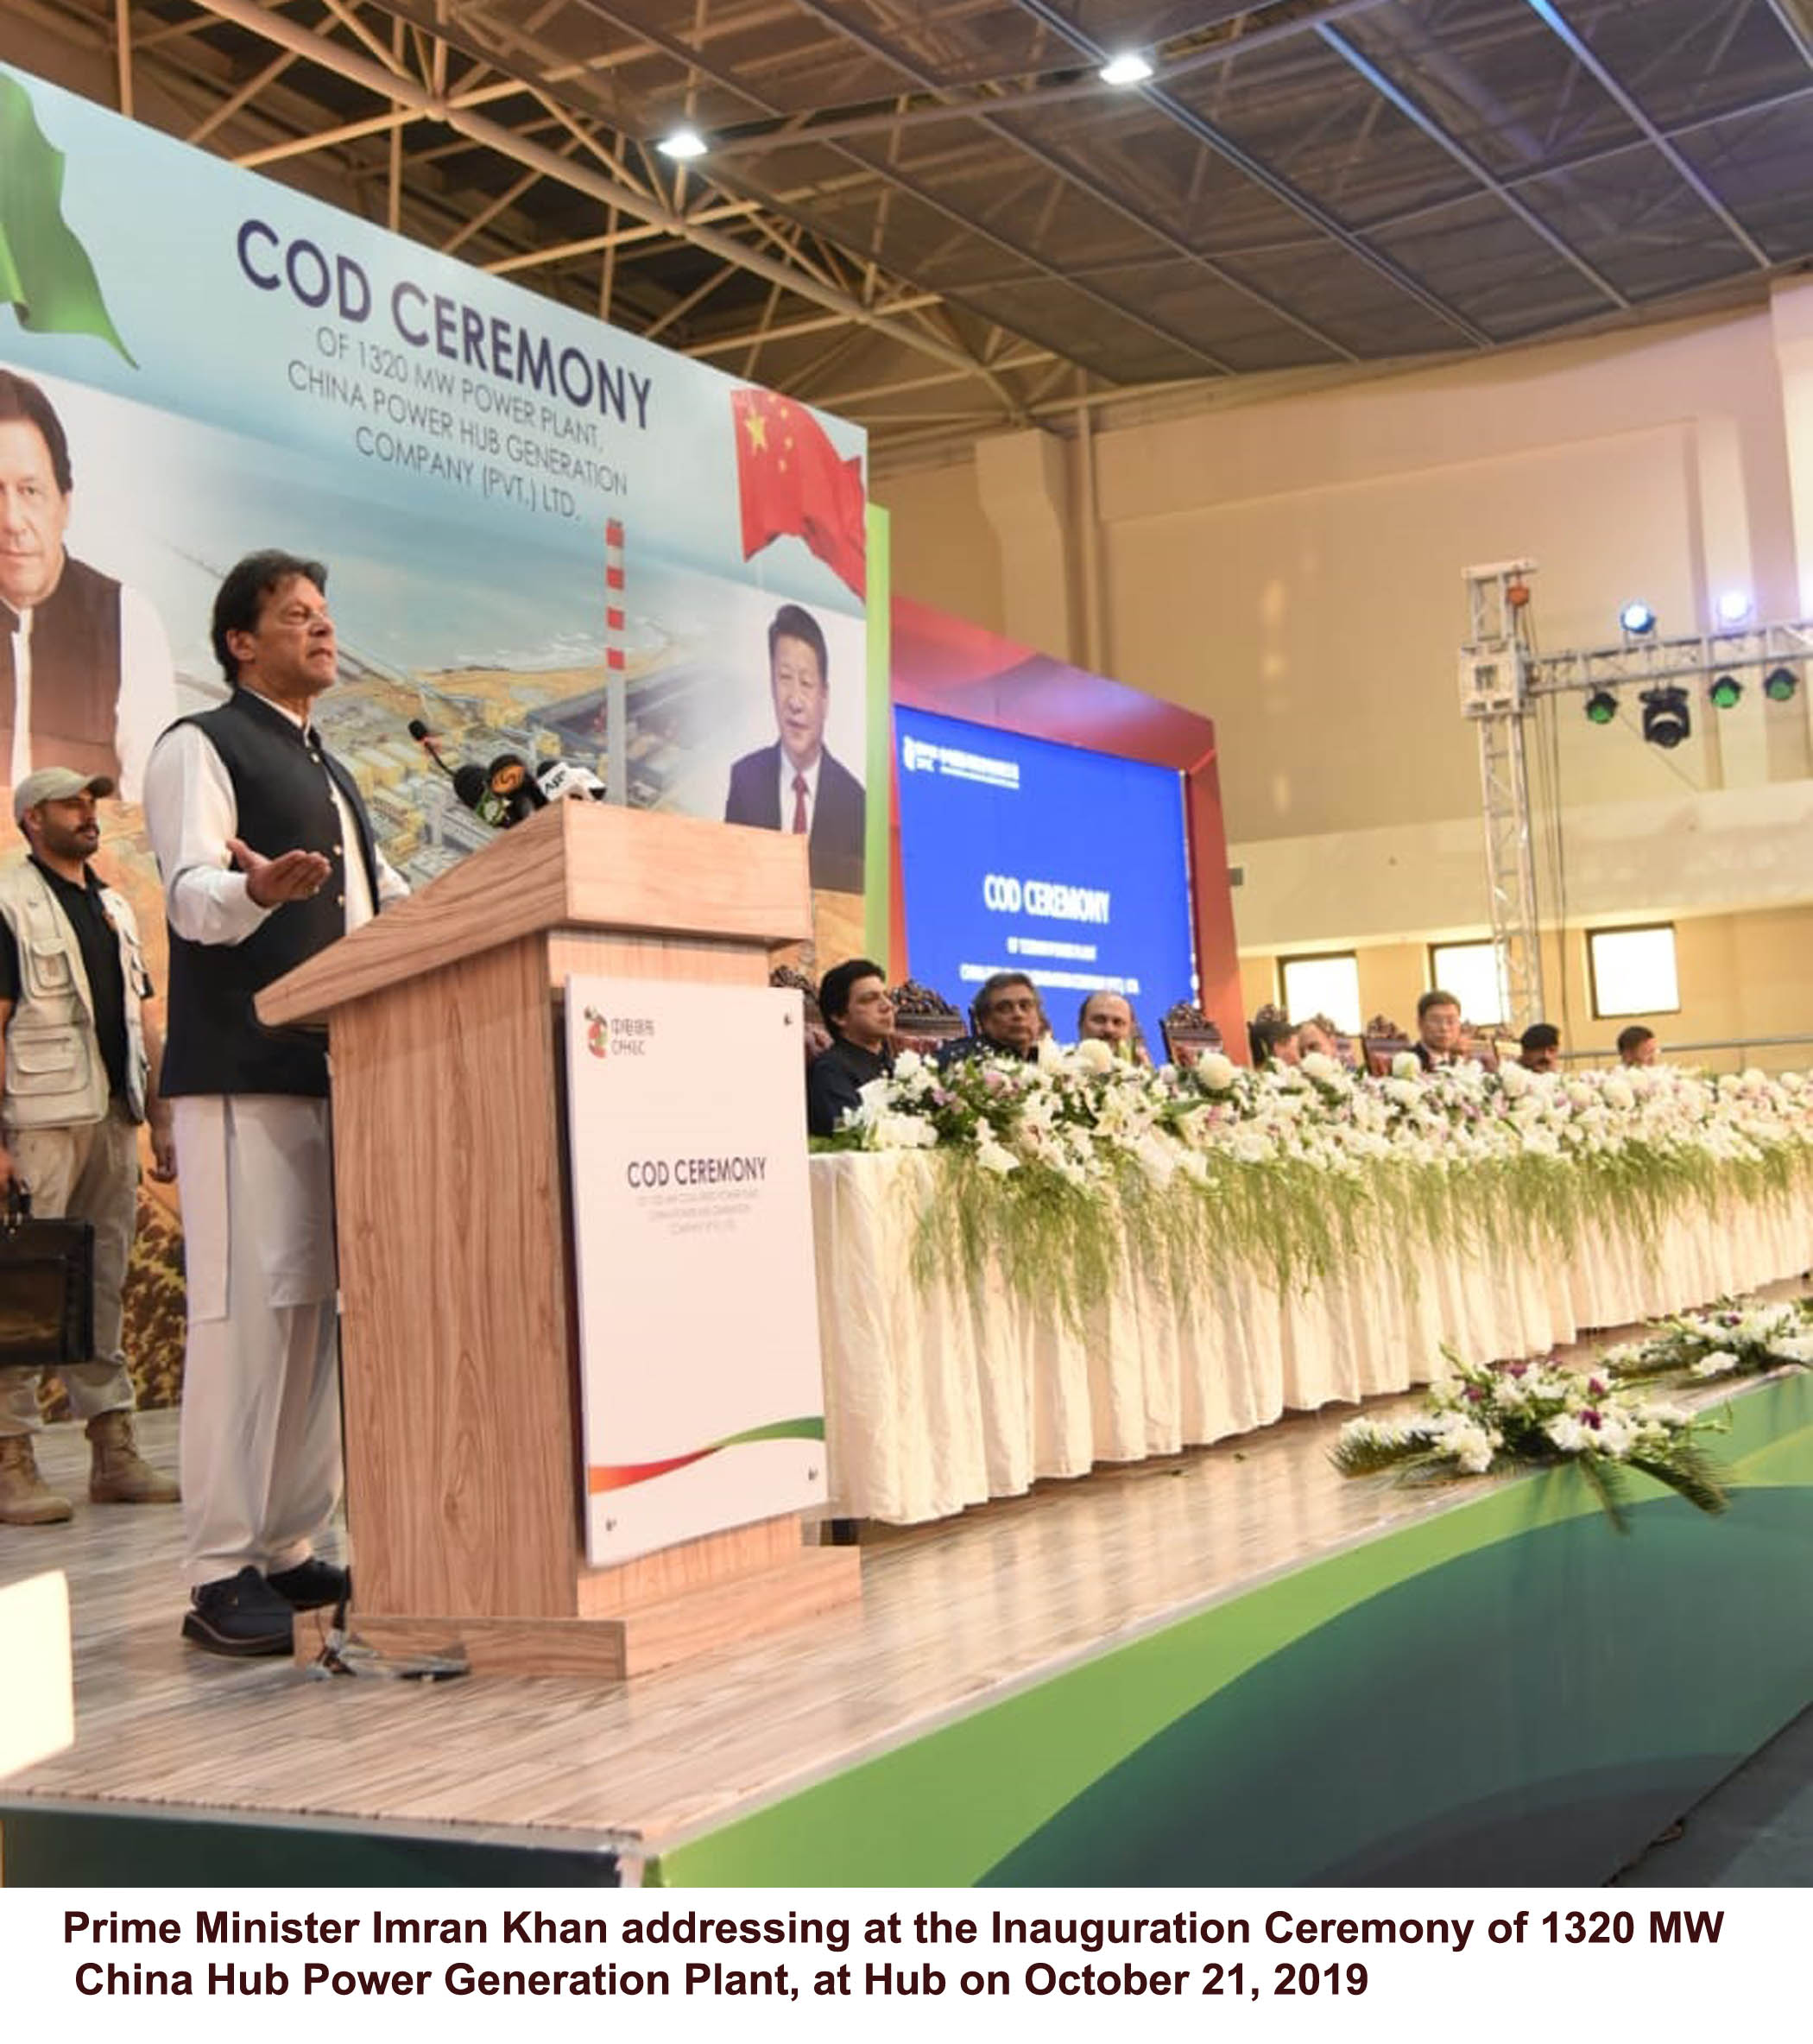 Prime Minister Imran Khan inaugurated 1320 MW Hub power plant on 21 October 2019